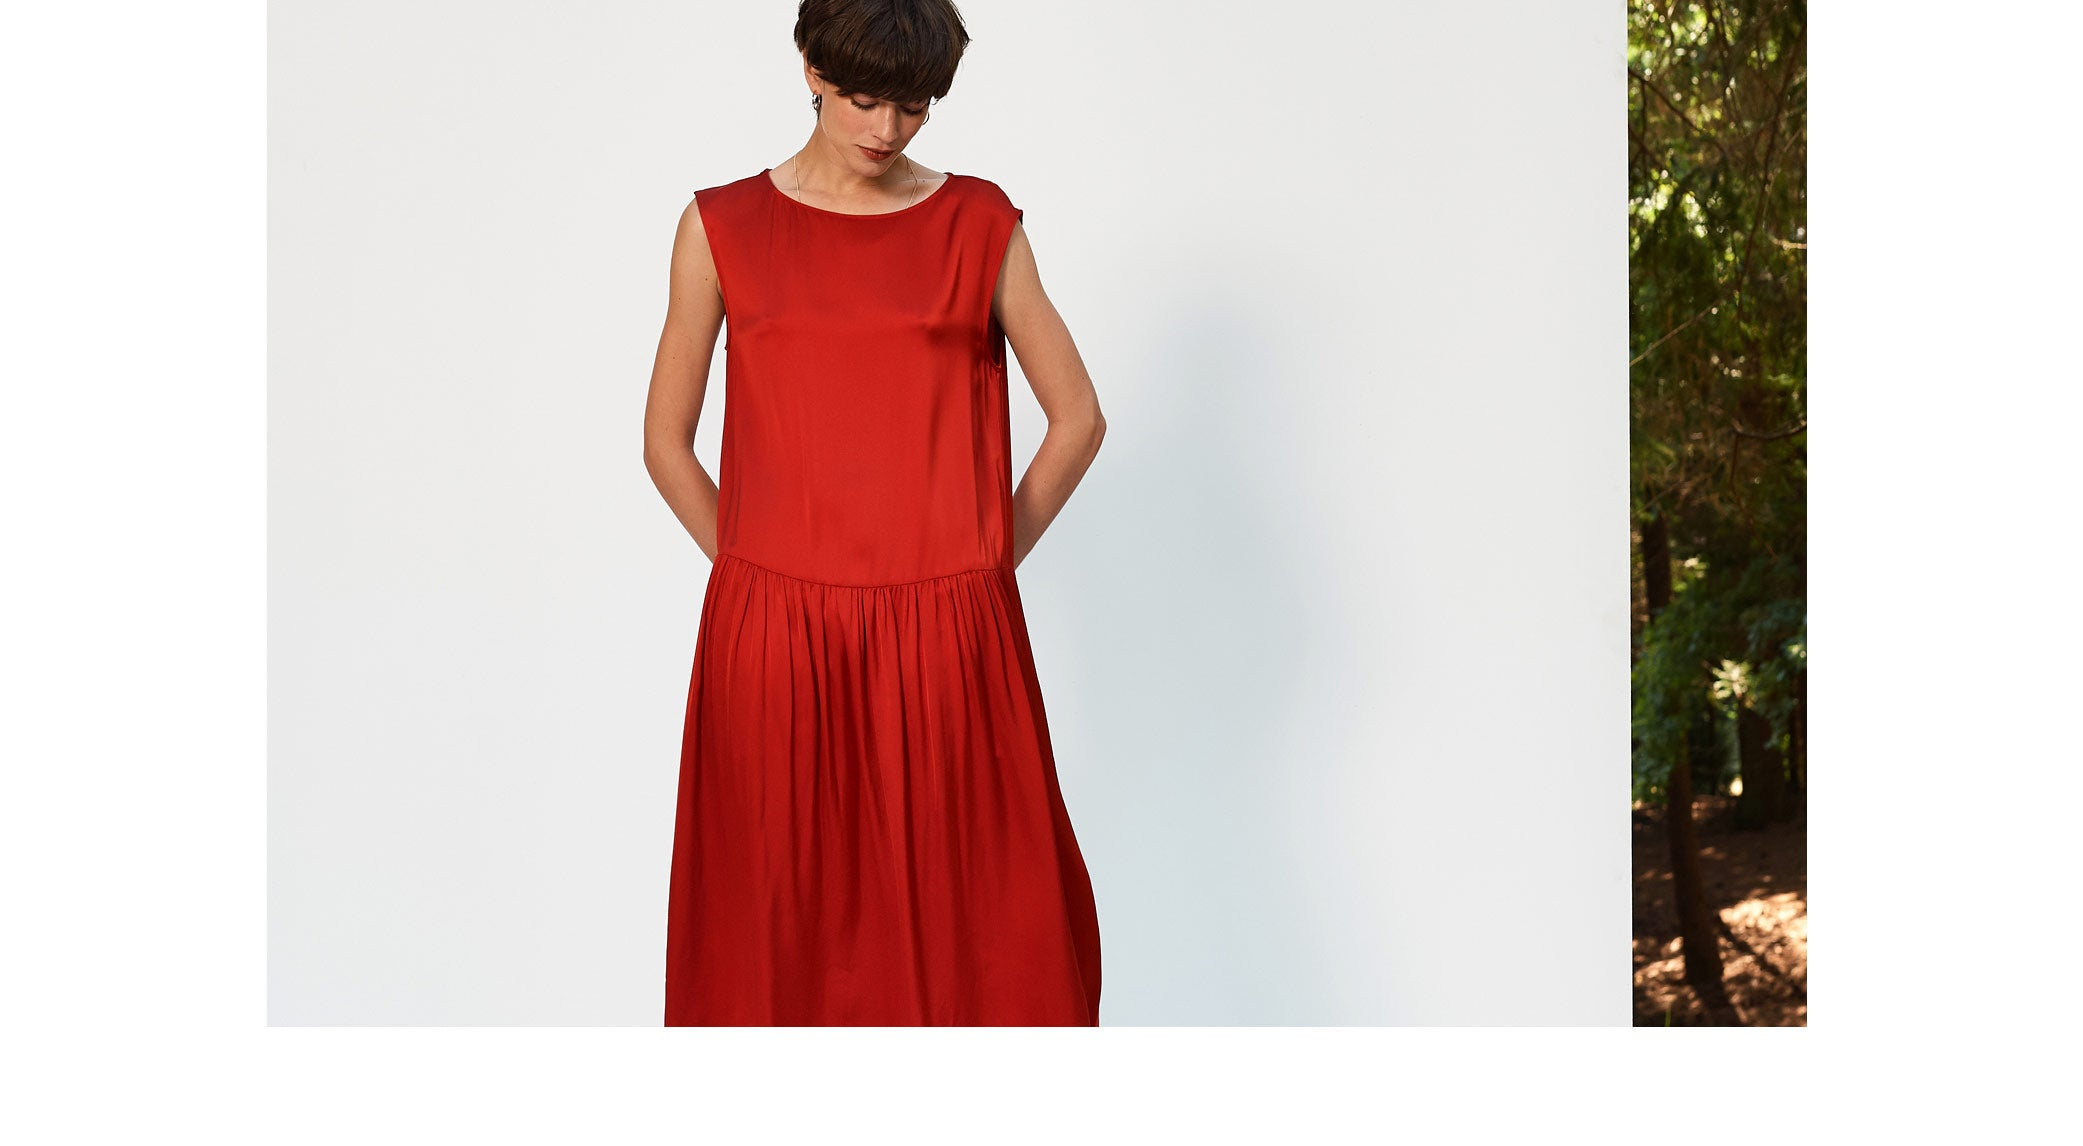 Bellerose FW'18 Saintonge red silky dress for women